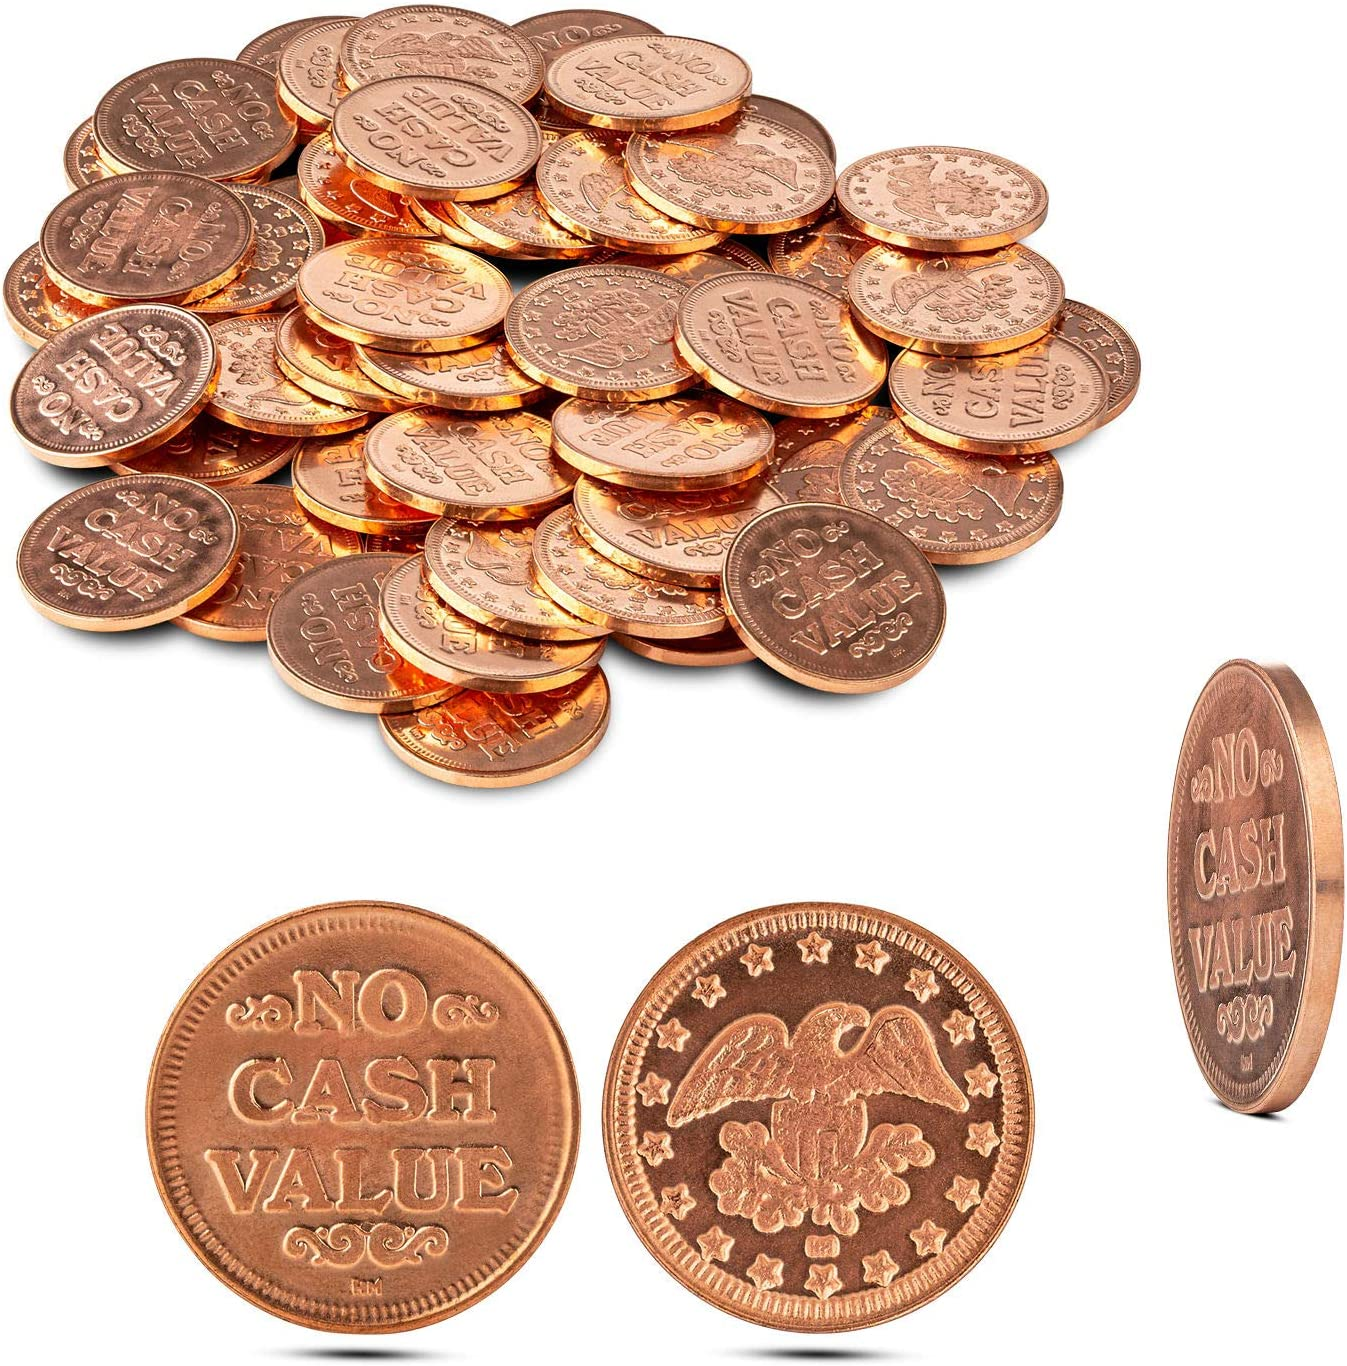 "Metal Copper Coins Pack of 50 Great as Tokens for Arcade Games or Prizes by MT Products – Size is Slightly Smaller Than a Quarter 0.900"" in Diameter - Please Check Size Before Purchase"